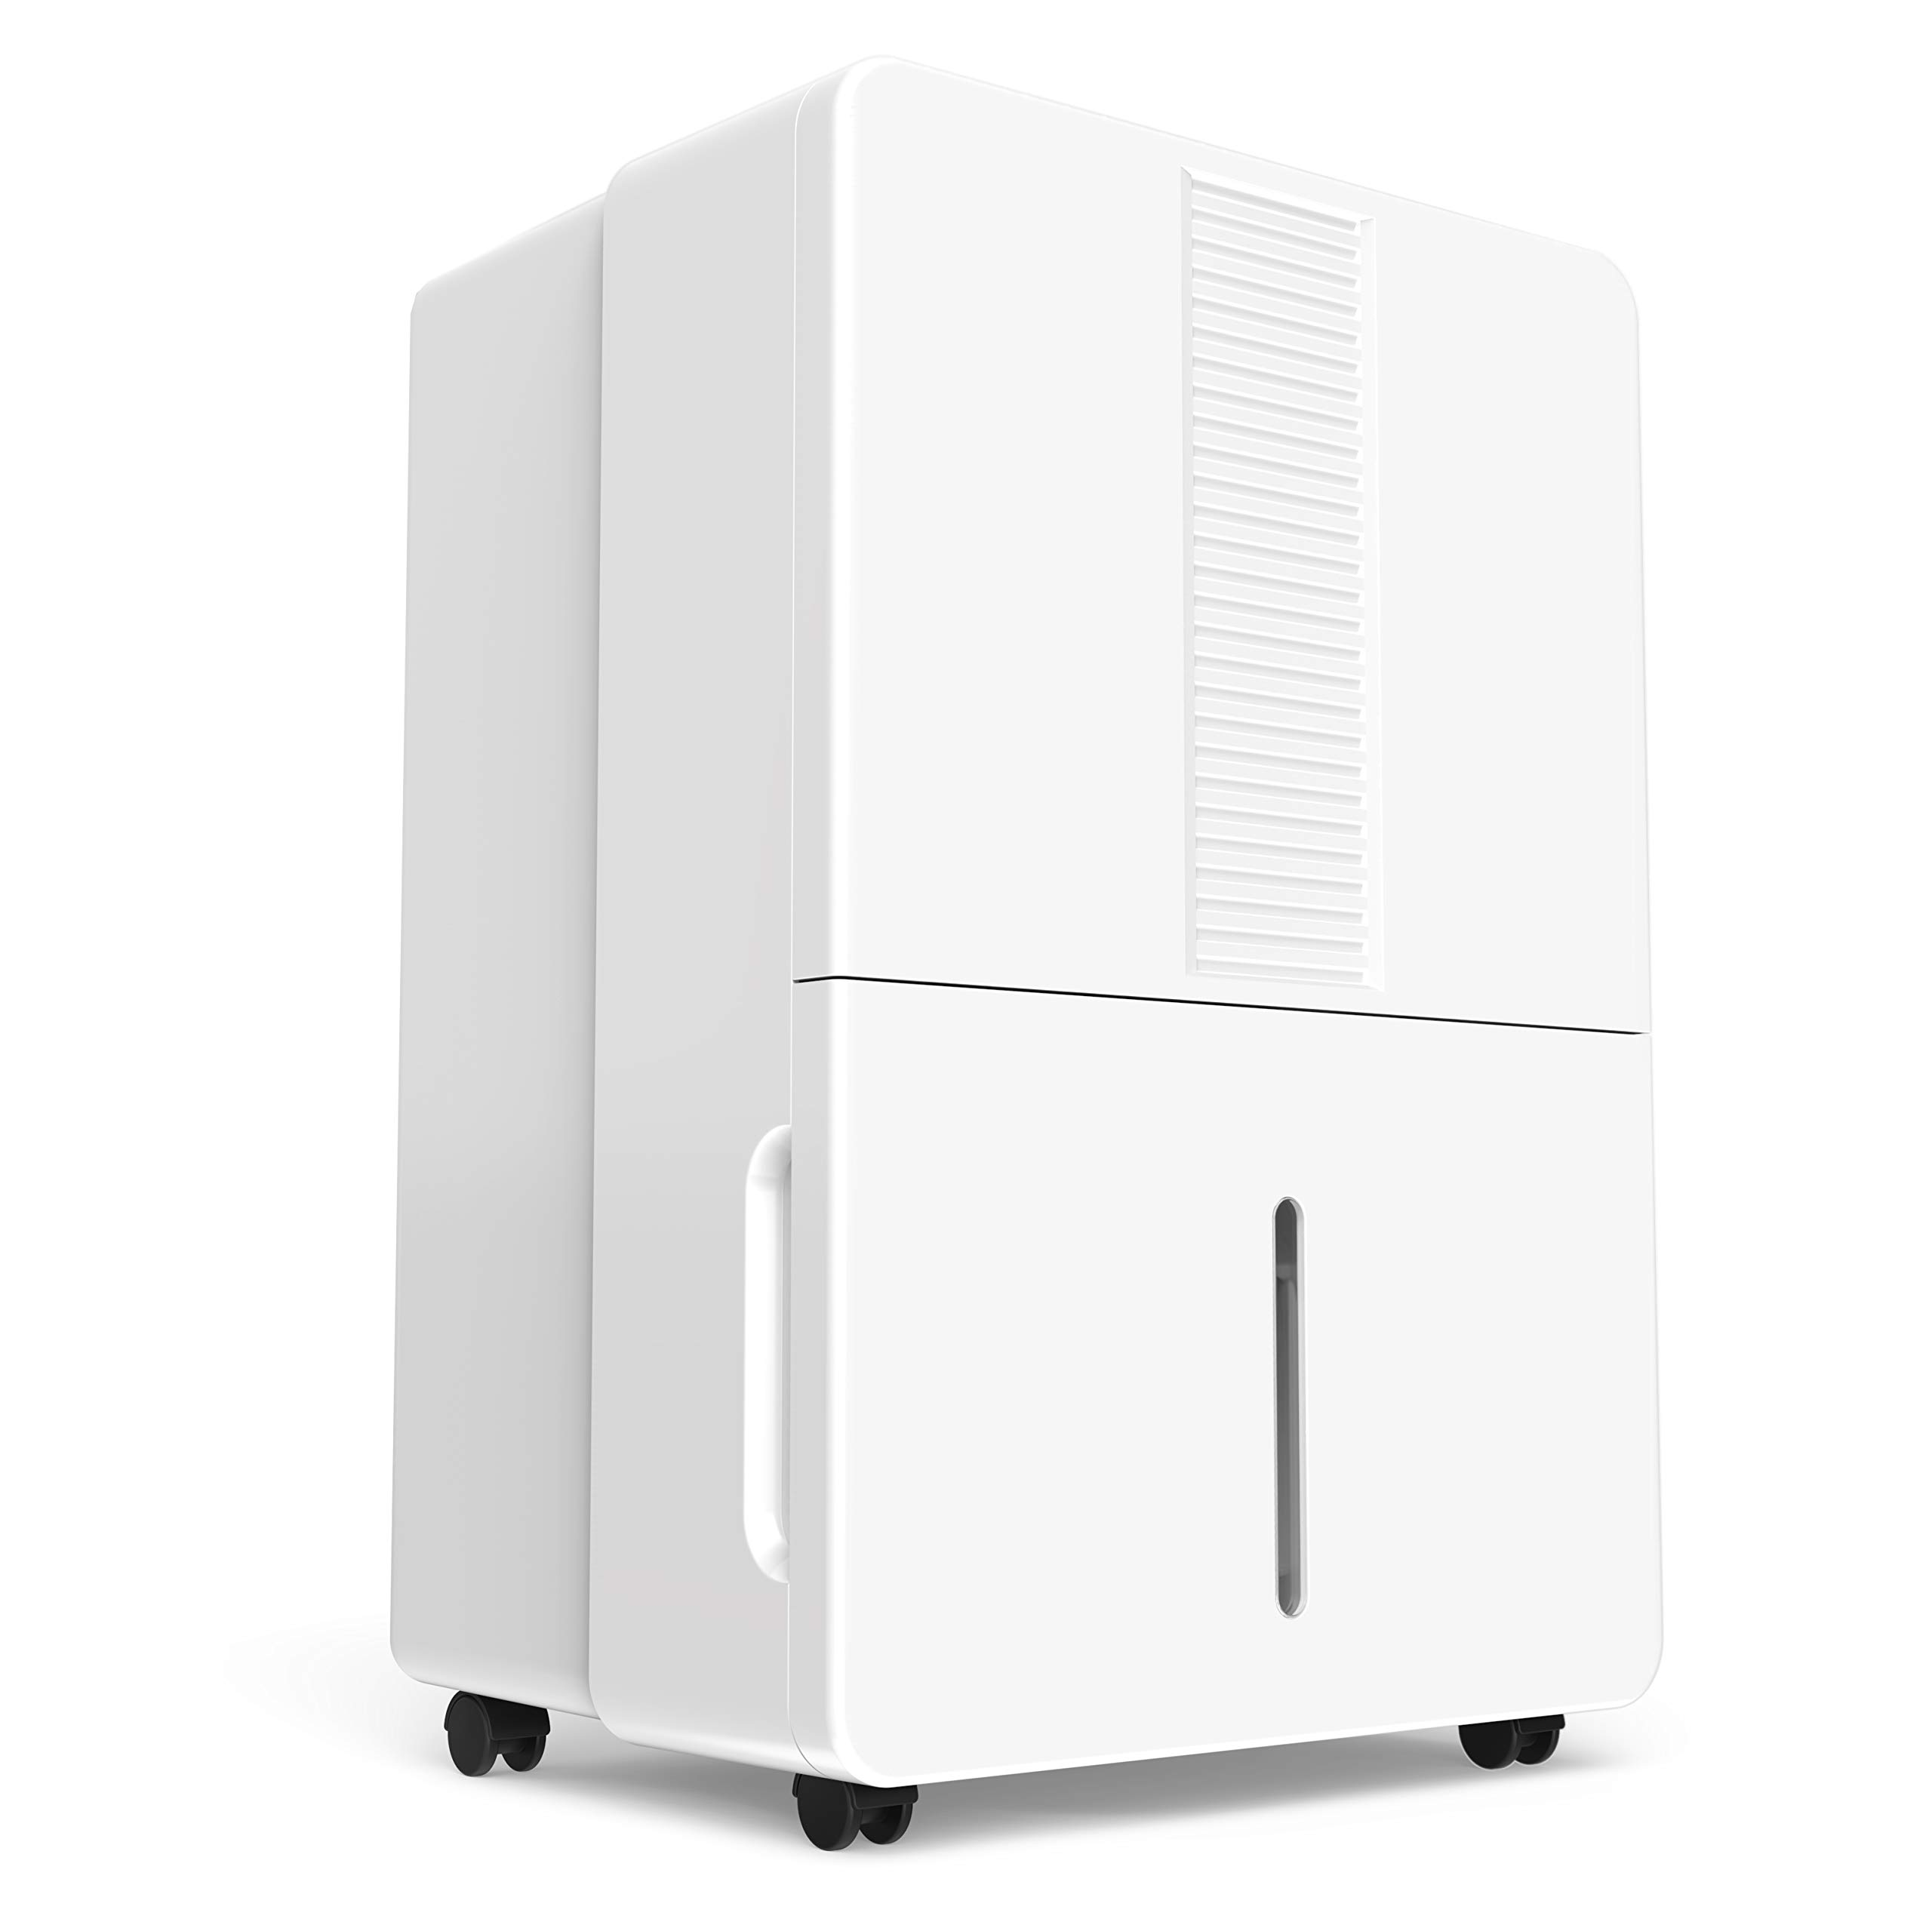 hOmeLabs 70 Pint Dehumidifier (with Pump) Featuring Intelligent Humidity Control - Energy Star Rated, Ideal for Large-Sized Rooms and Basements to Remove Moisture-Related Mold, Mildew and Allergens by hOmeLabs